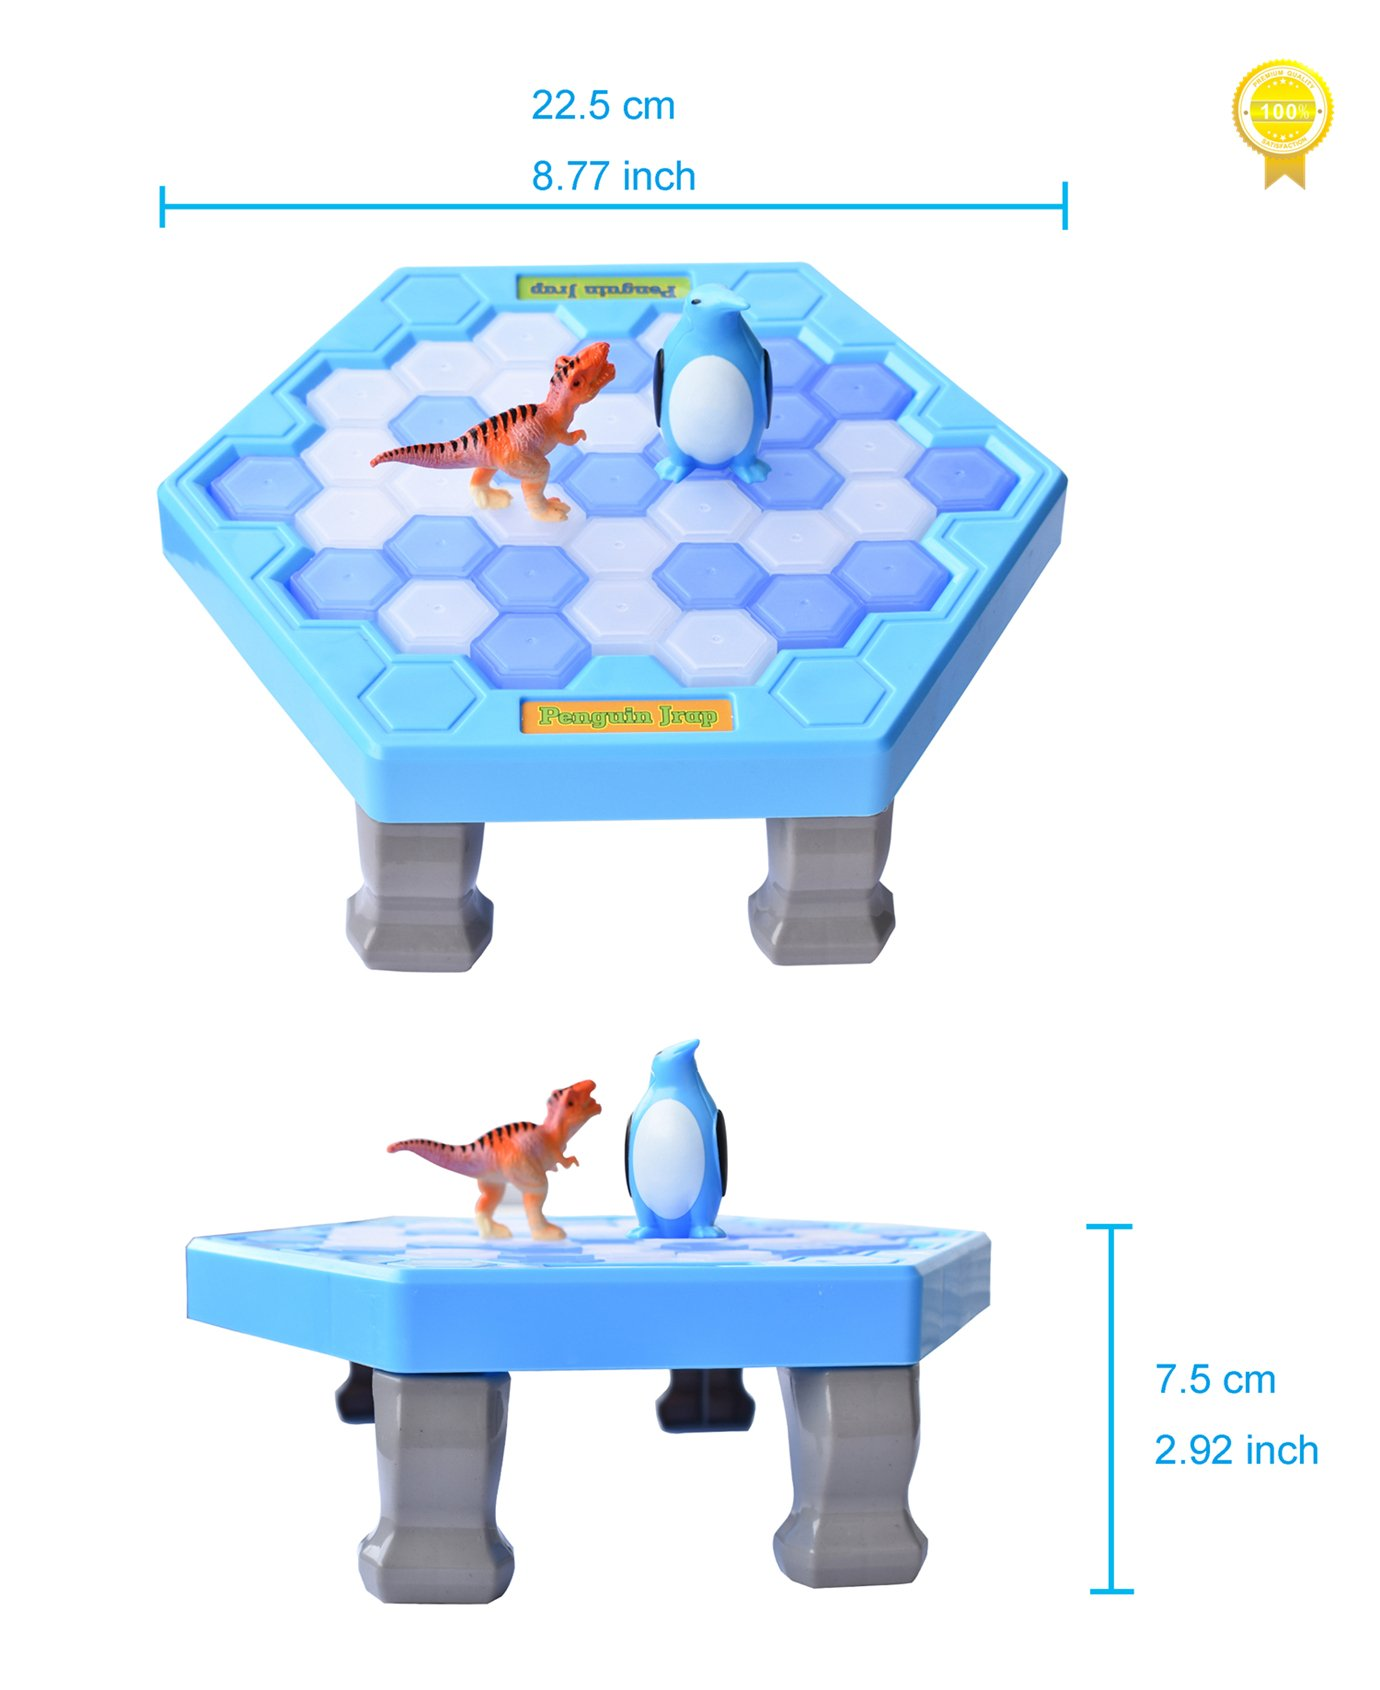 SPEAK FUN Penguin Trap Puzzle Table Games Balance Ice Cubes Icebreaking Games Save the Penguin Interactive Family Game by SPEAK FUN (Image #3)